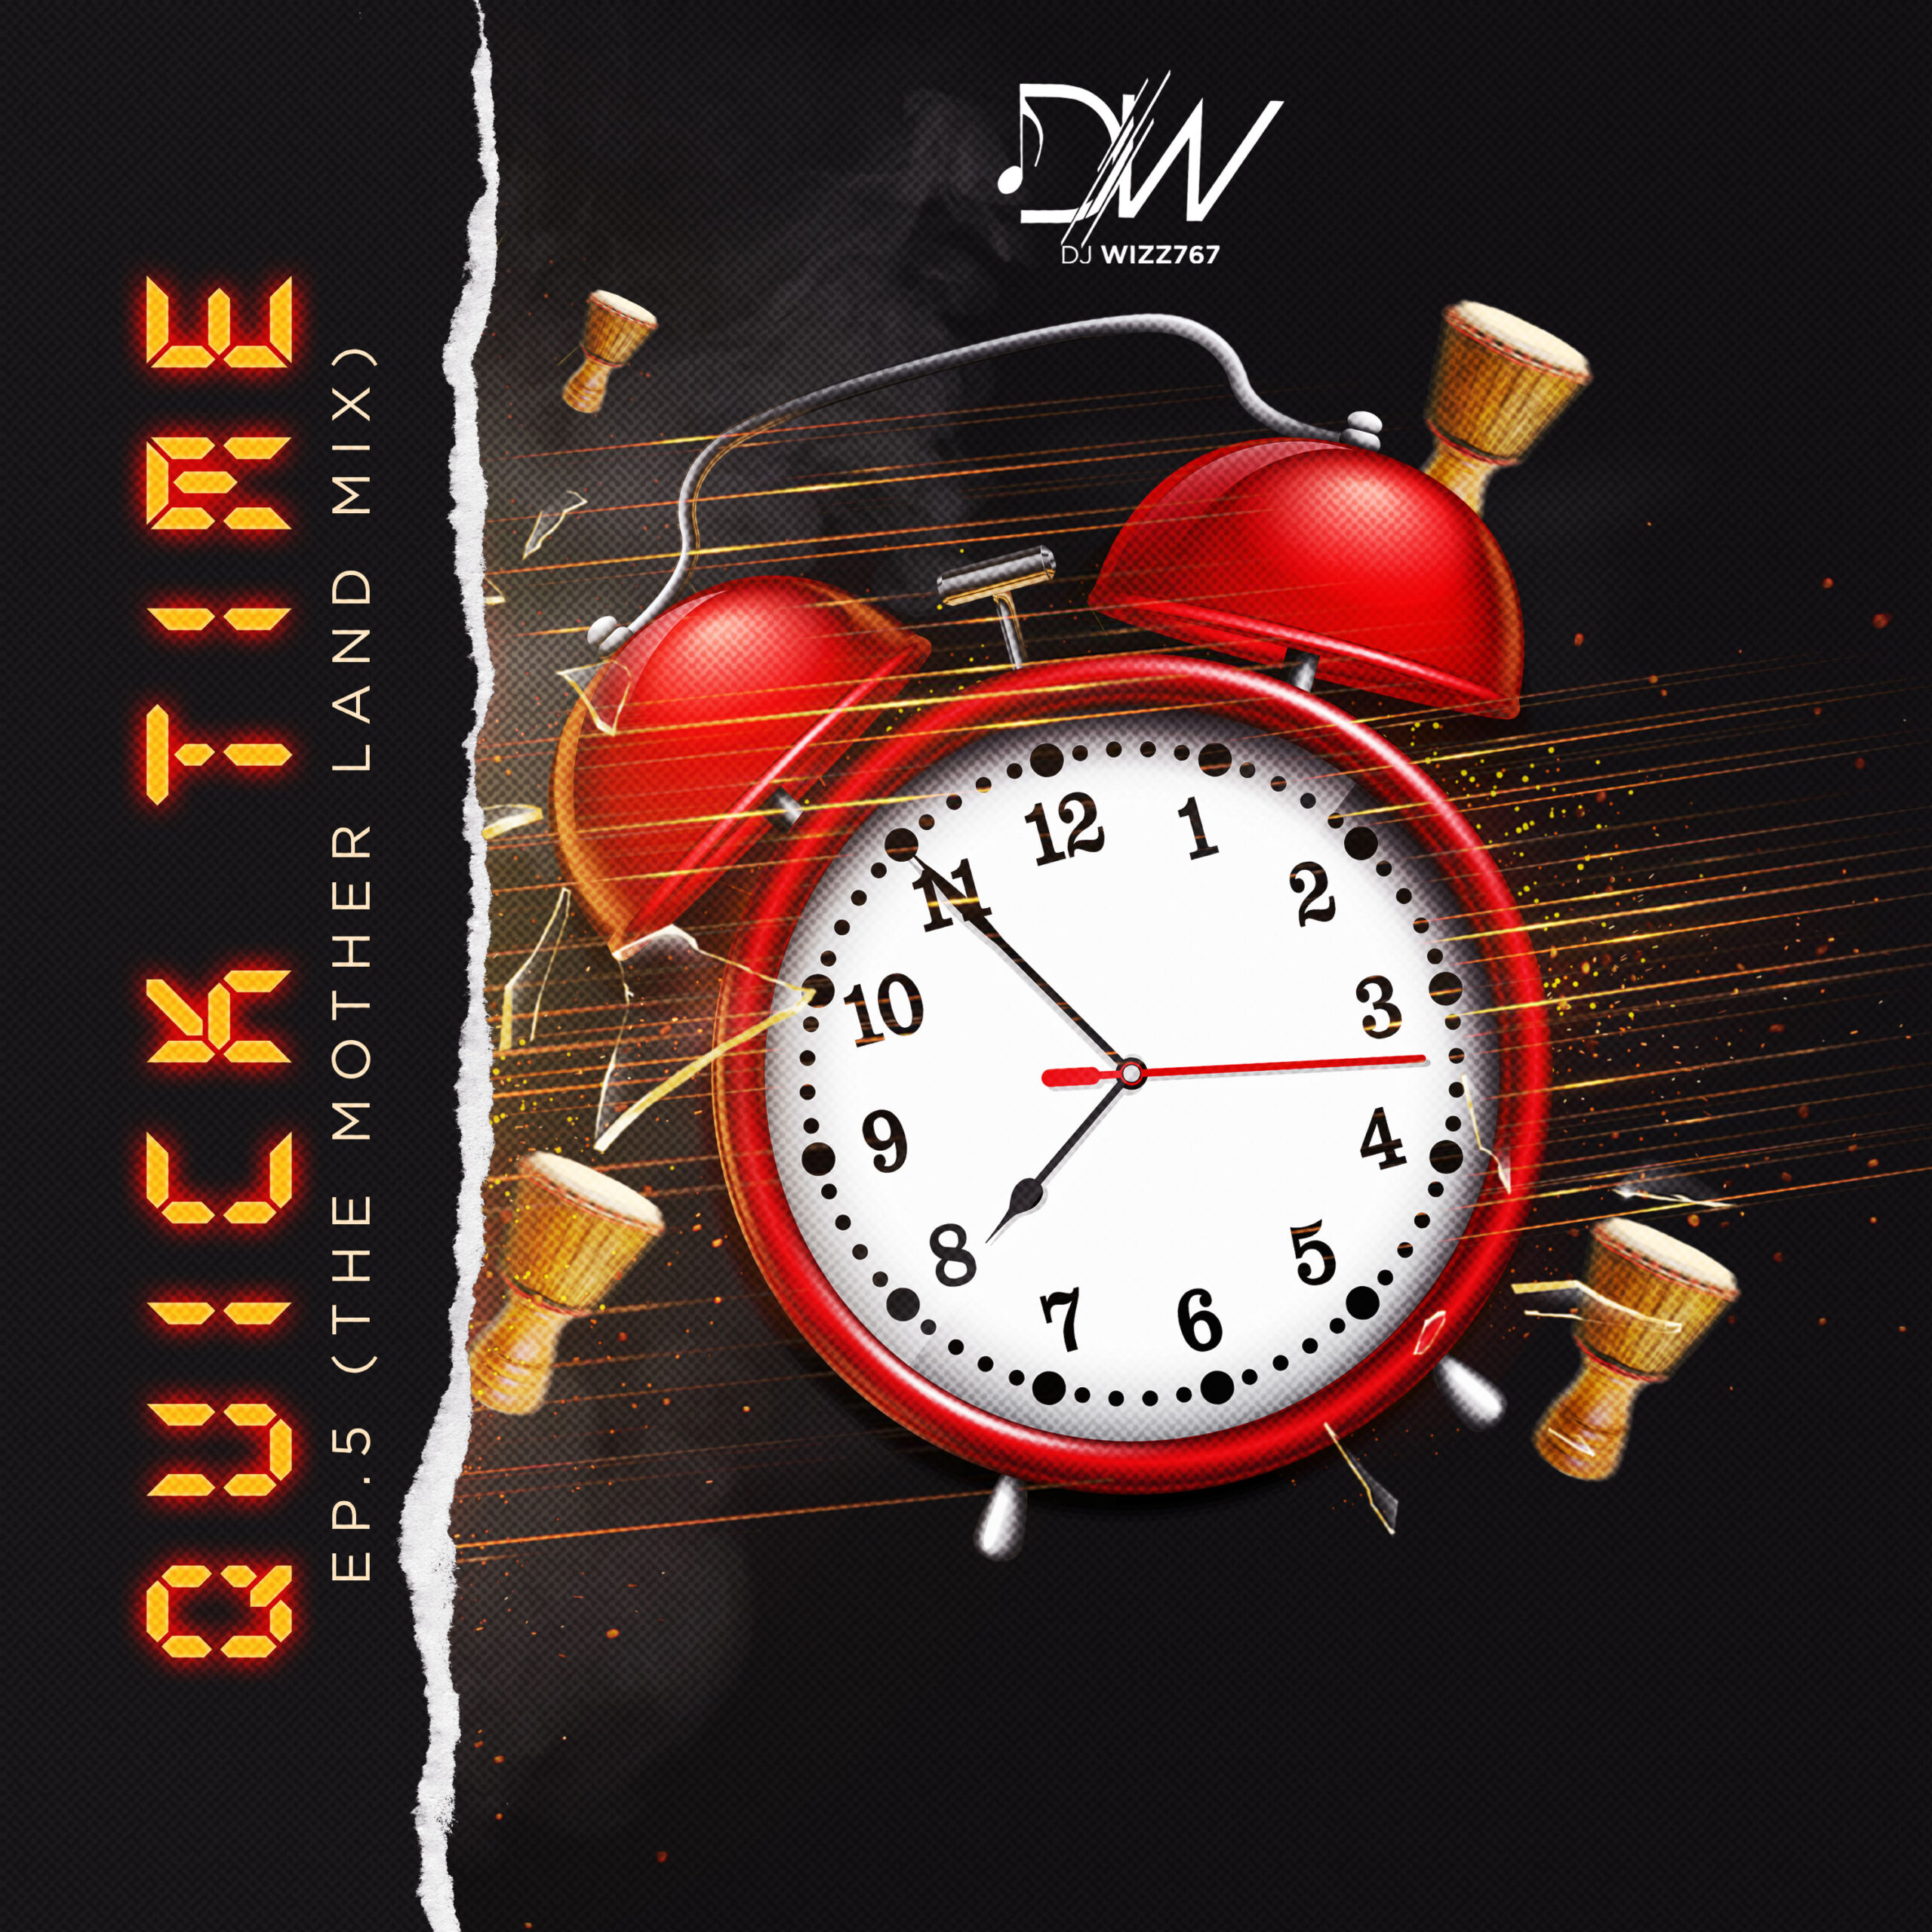 You are currently viewing Dj Wizz767 – QUICK TIME EP.5 (THE MOTHERLAND MIX)